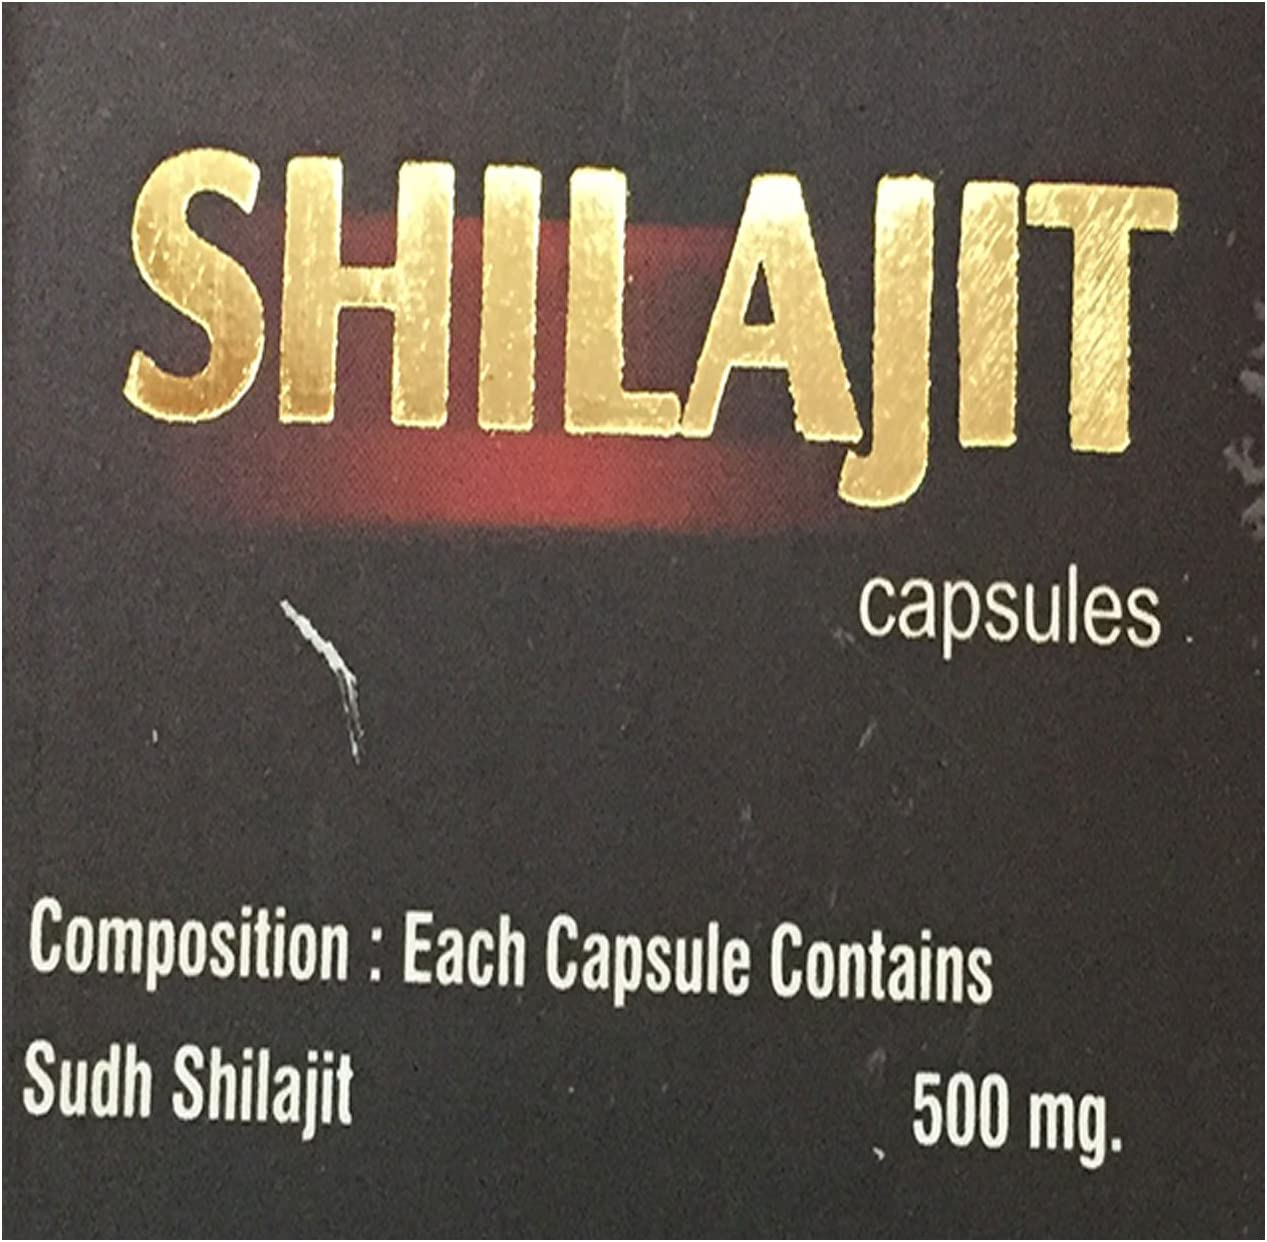 Ayurved Research Foundation Shilajit Capsule Herbal Supplement to Increase Energy and Stamina 4 Packs of 30 Capsules: Health & Personal Care